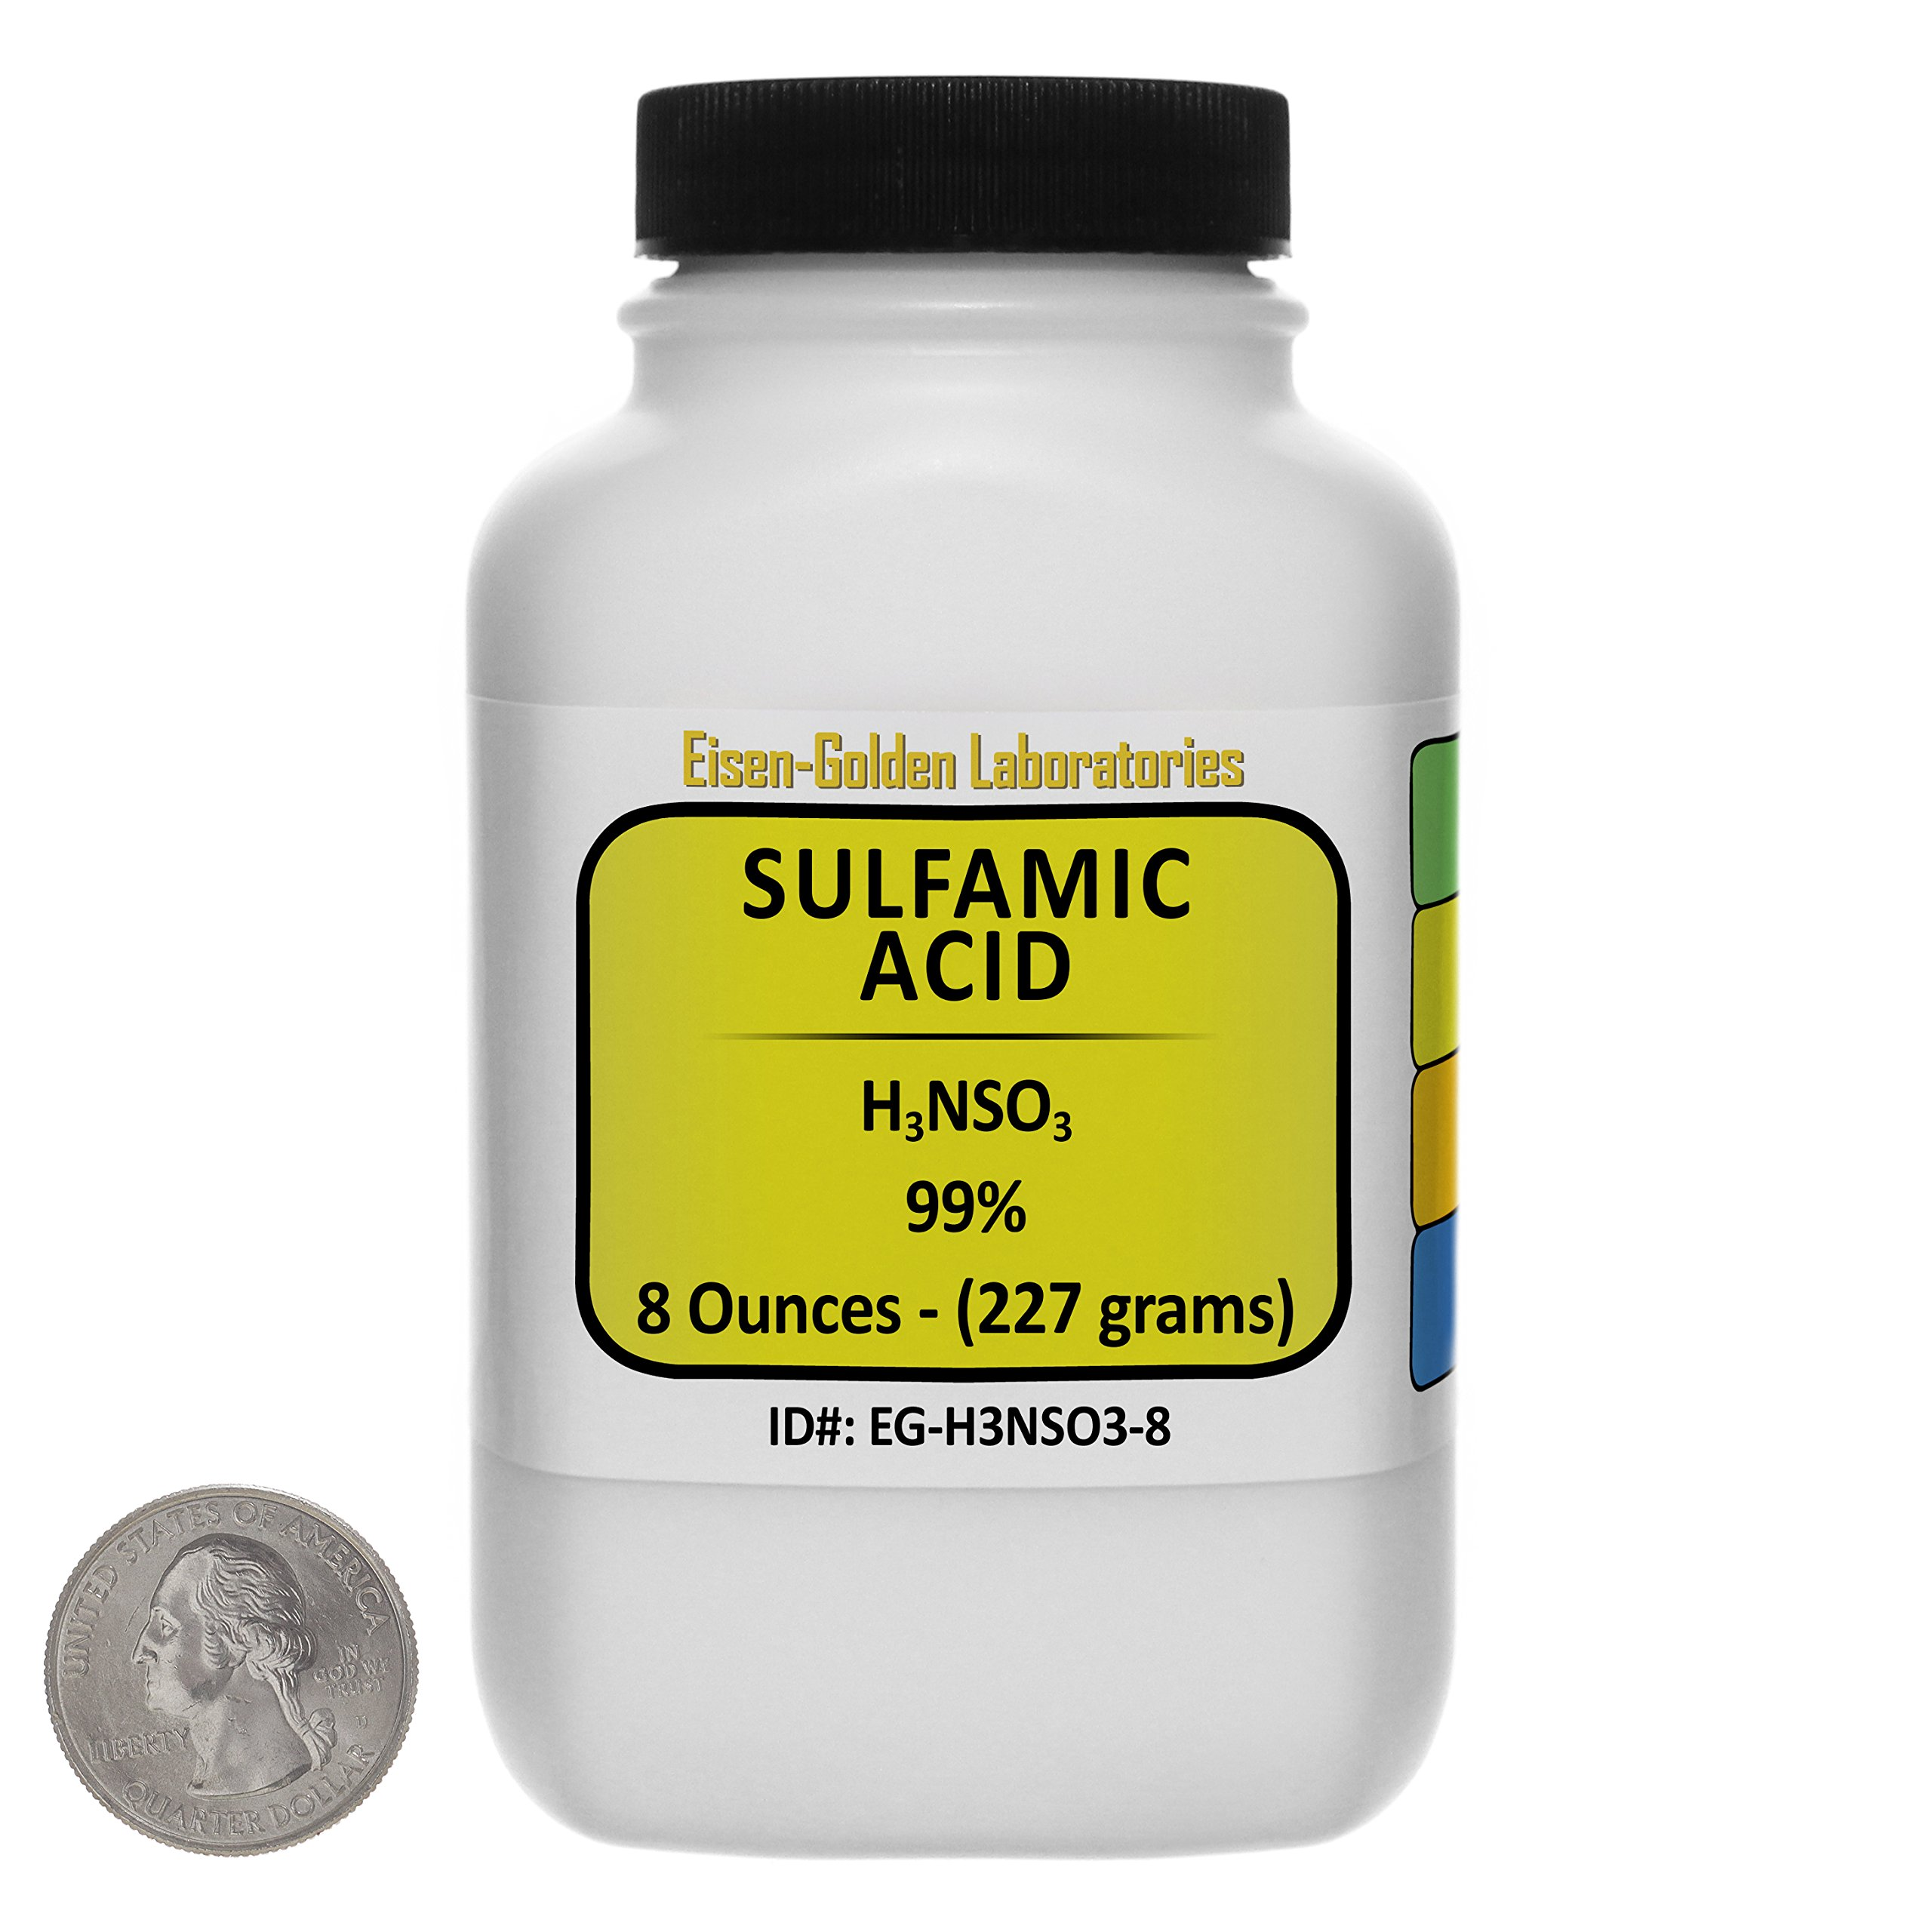 Sulfamic Acid [H3NSO3] 99% ACS Grade Powder 8 Oz in a Space-Saver Bottle USA by Eisen-Golden Laboratories